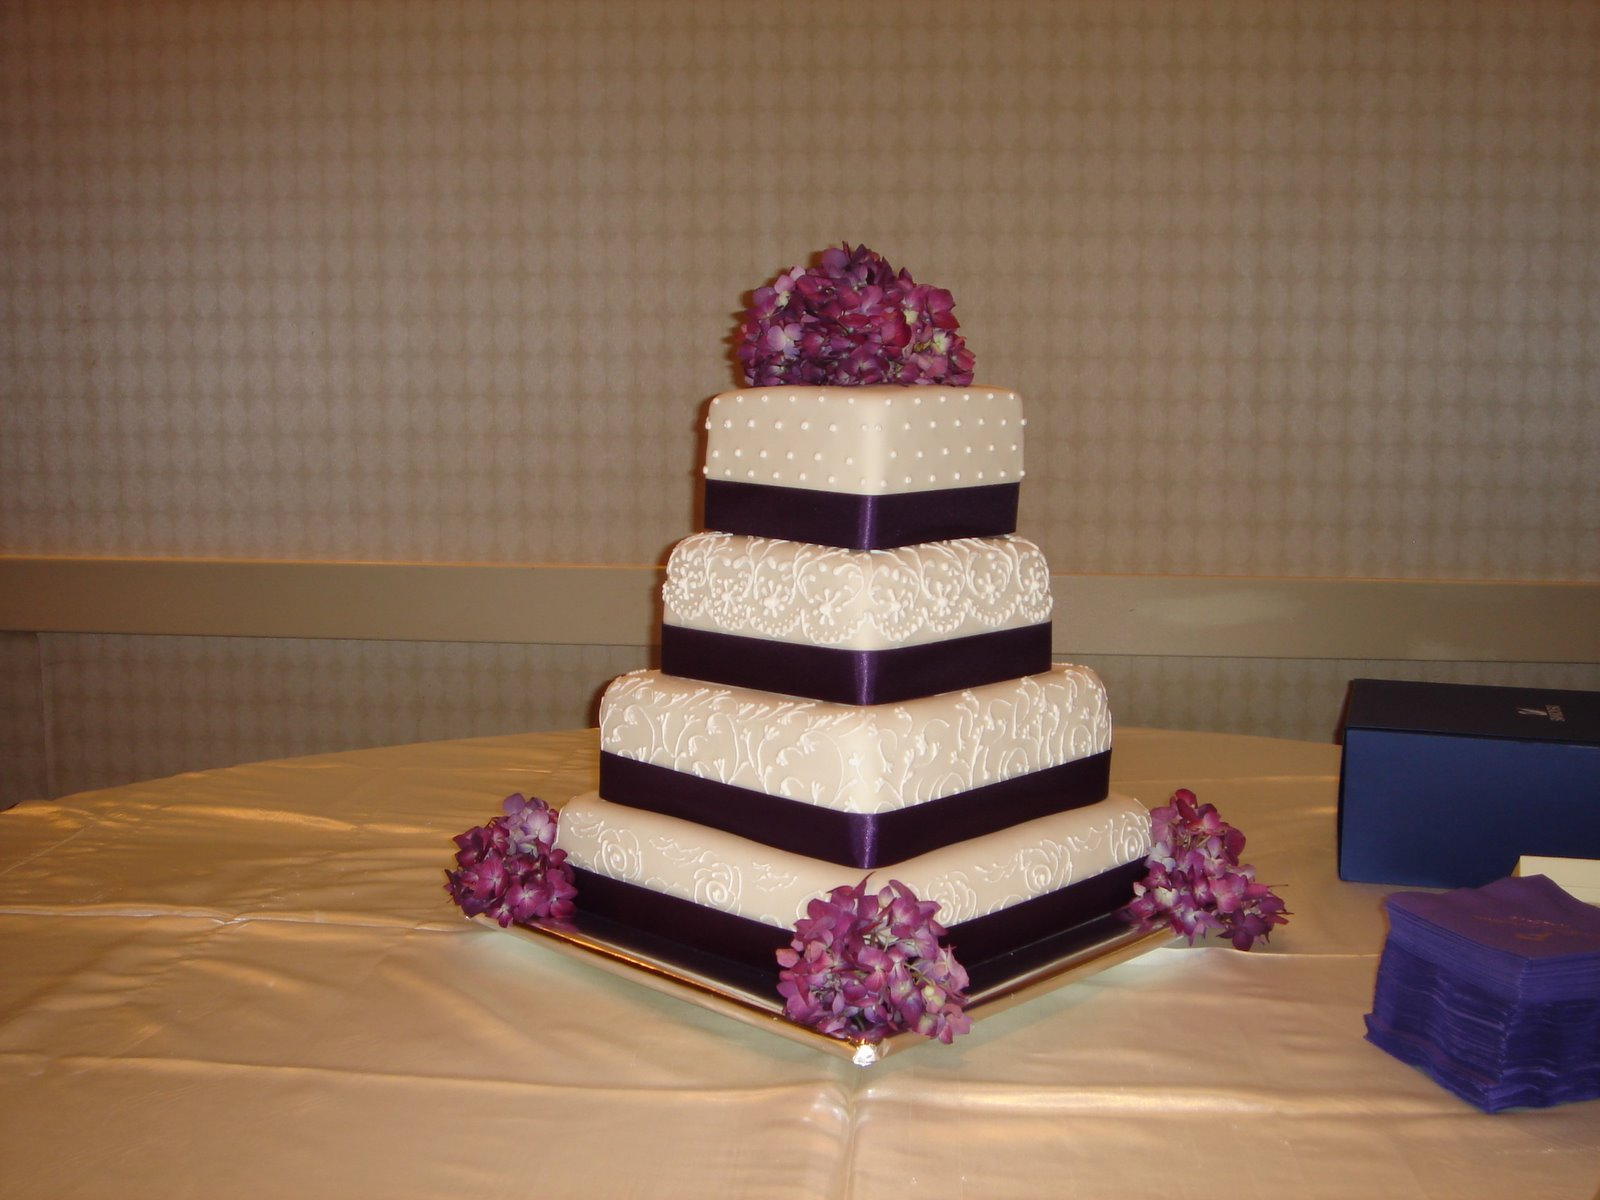 Percfectly purple wedding cake by Art Eats Bakery